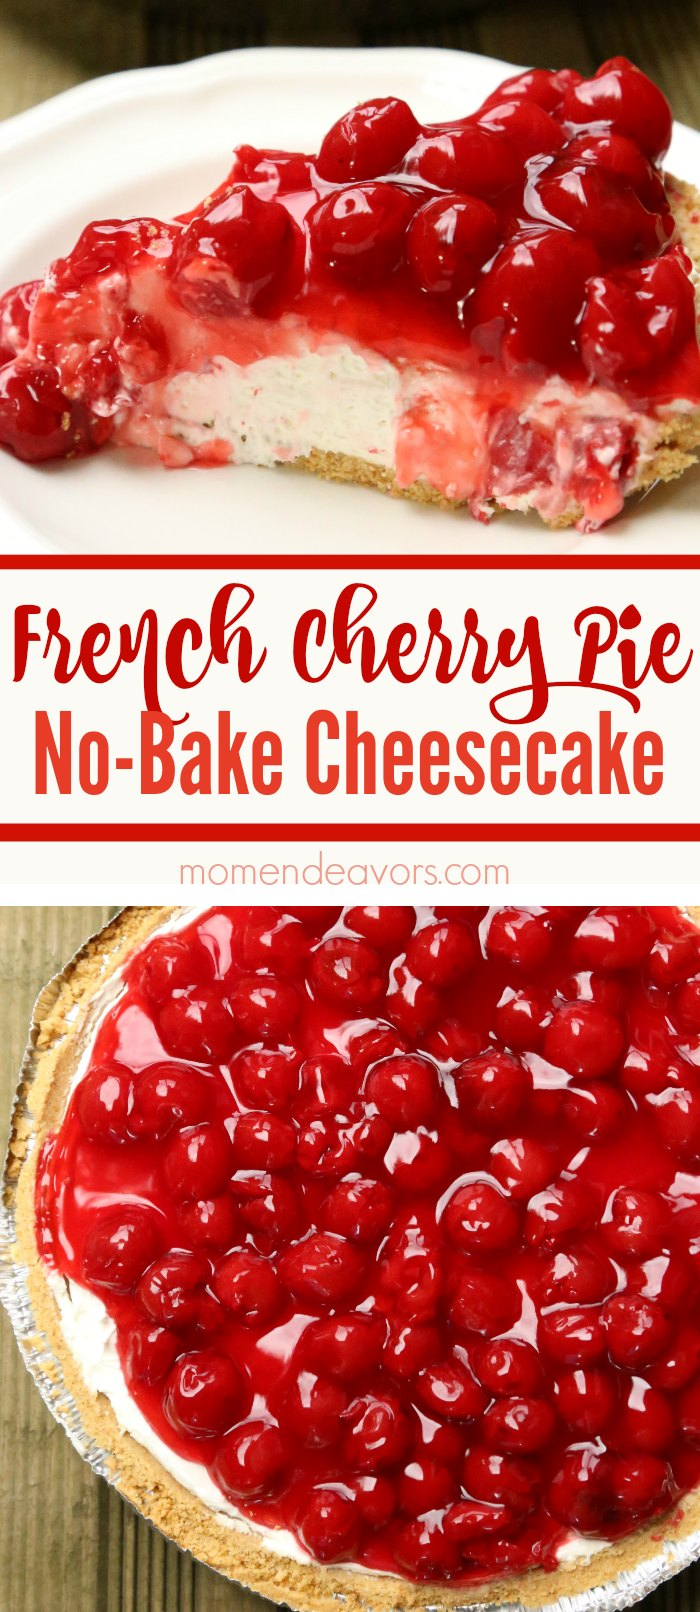 French Cherry Pie No-Bake Cheesecake